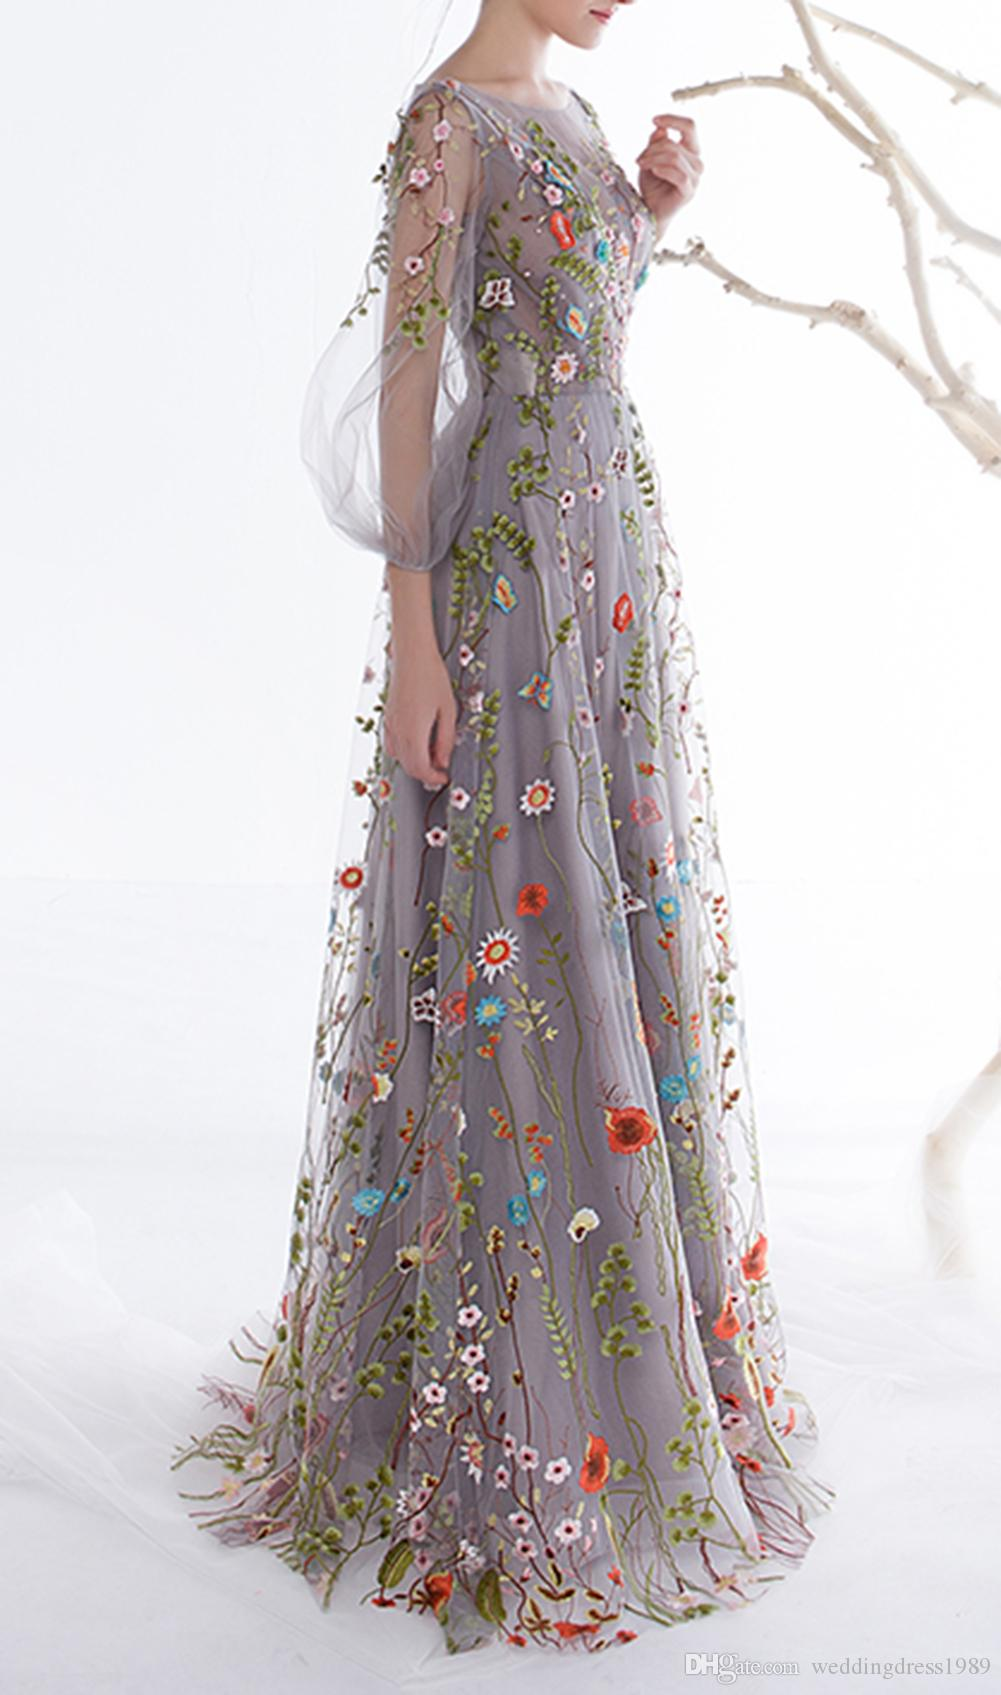 Sexy Embroidery Sheer Floral Evening Dresses 2018 Illusion Flower Plus Size Guest Dress Long Party Dress Prom Gowns Celebrity Pageant